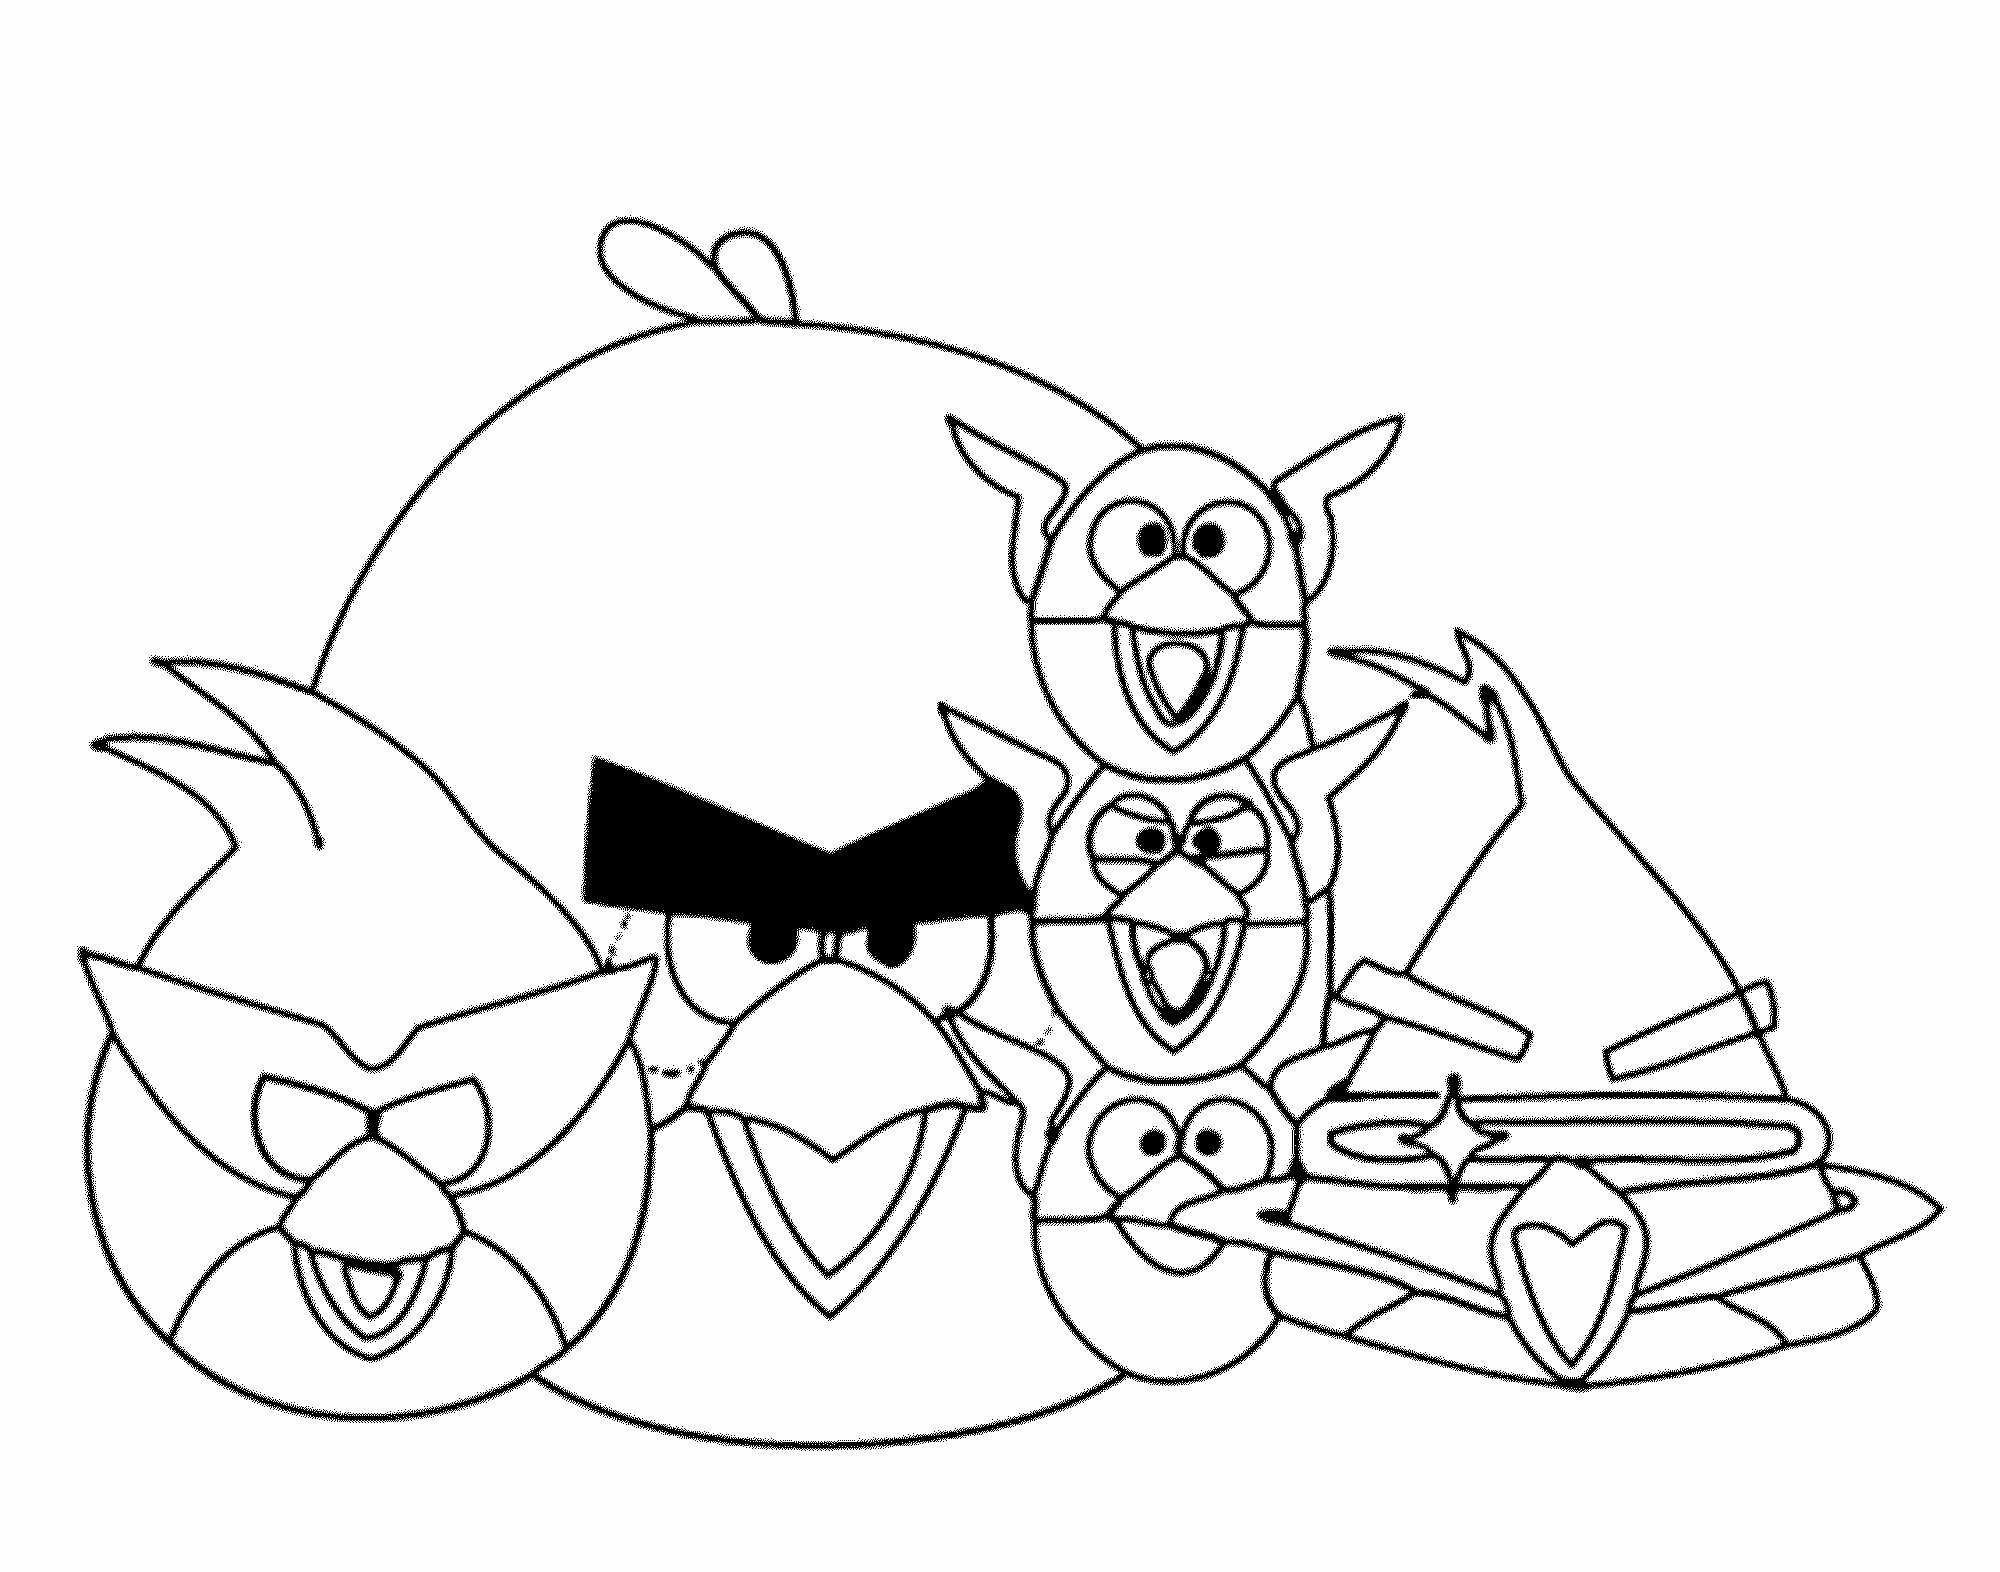 2000x1572 Crayola Giant Coloring Pages Luxury Star Wars Of Picture High